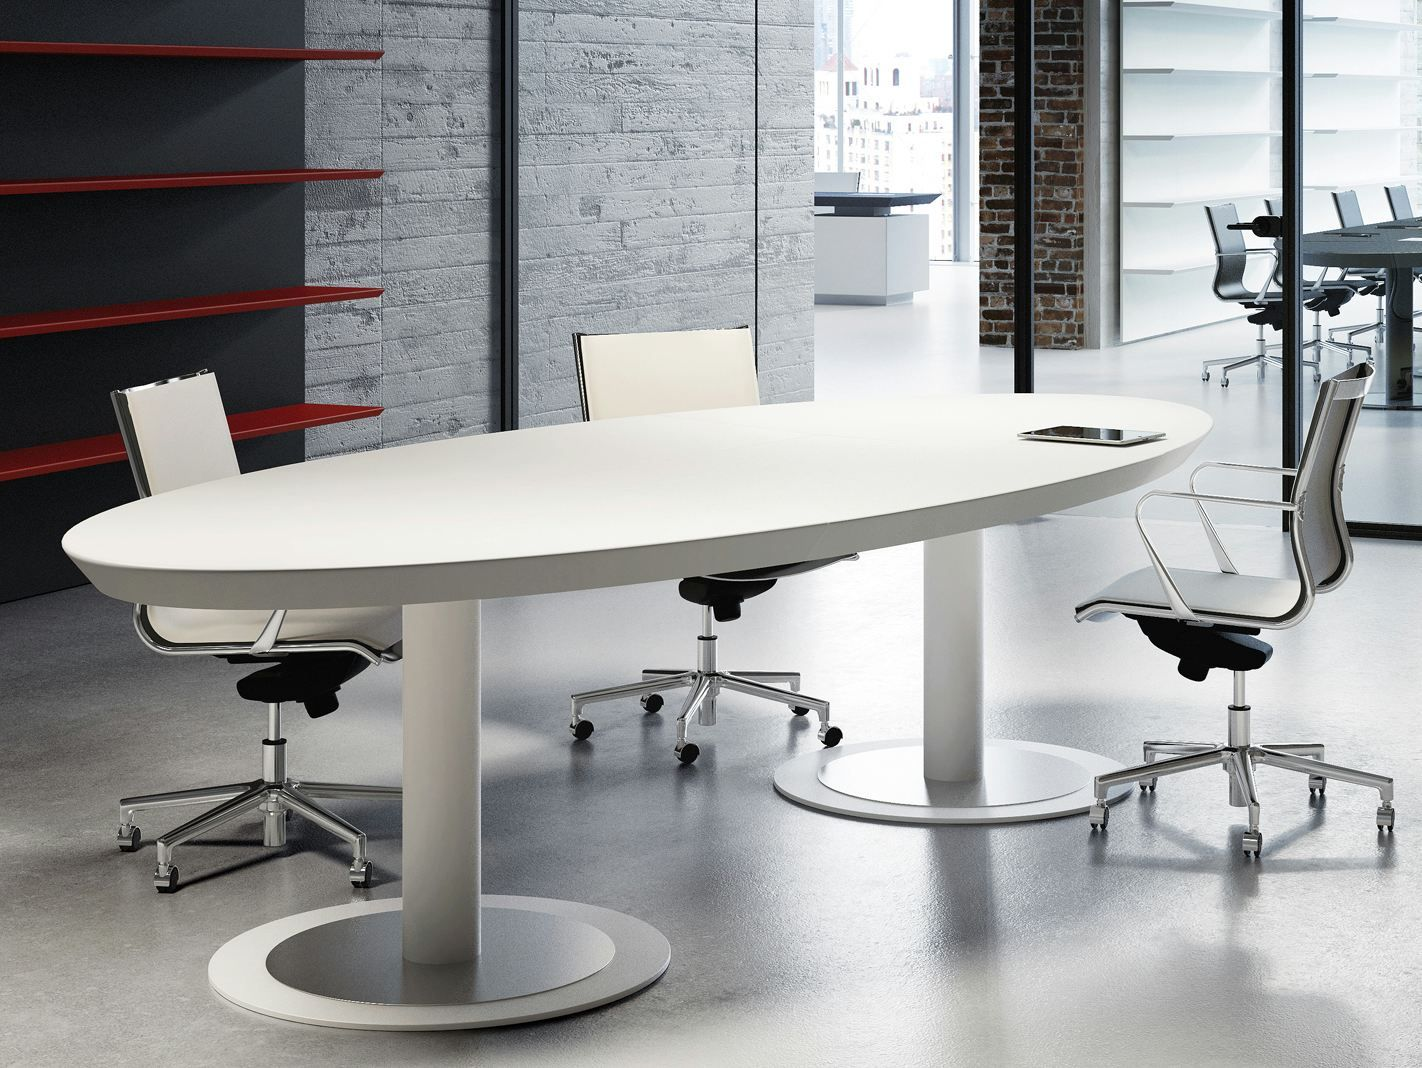 Multipliceo Oval Meeting Table By Fantoni Office Furniture Modern Meeting Table Conference Table